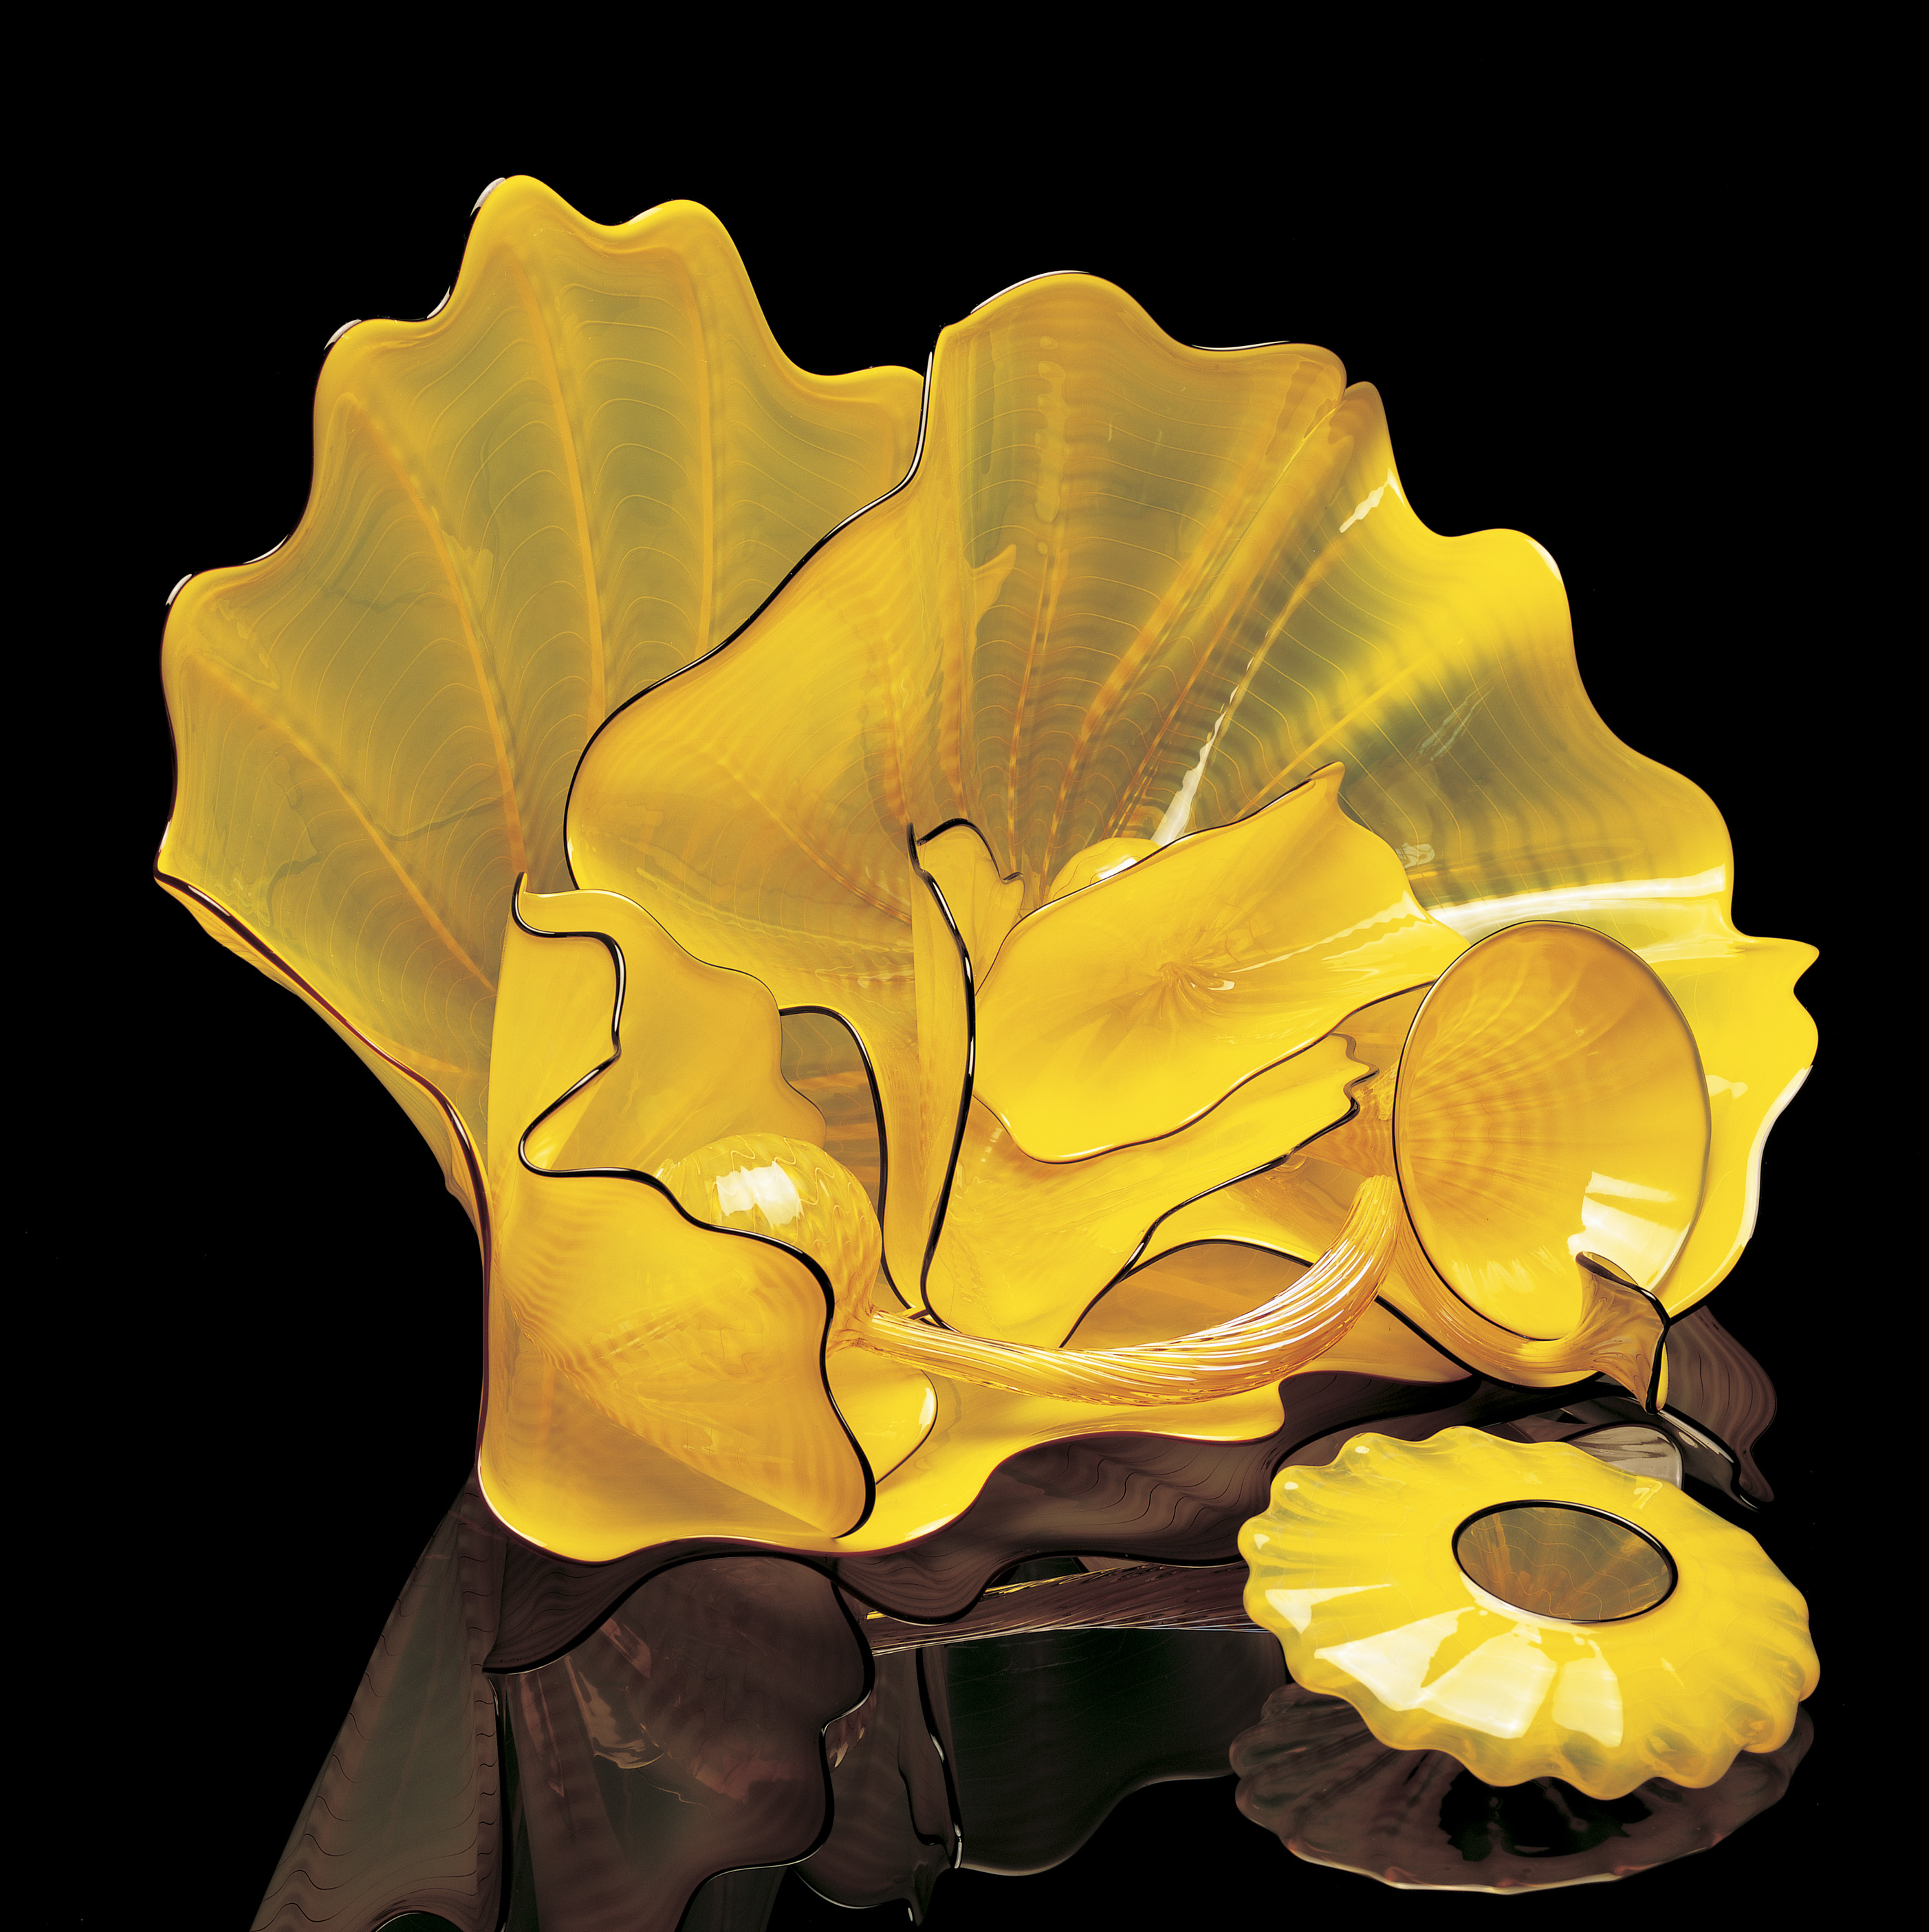 Dale Chihuly, Forsythia Yellow Persian Set with Raven Lip Wraps, 2002, 33 x 53 x 41 cm